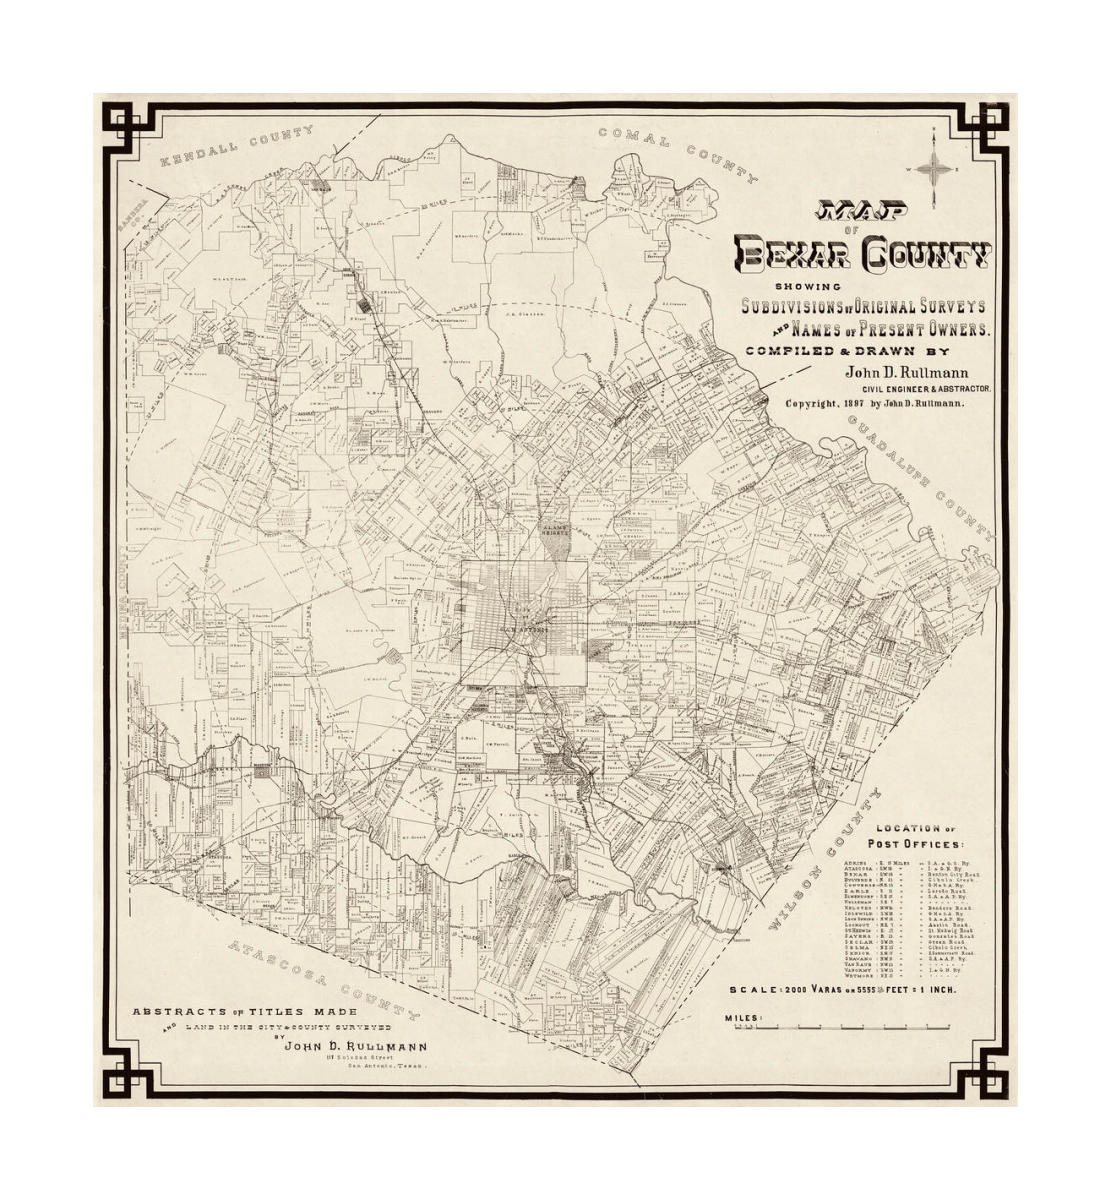 Map Of Texas Capitol.John D Rullmann Map Of Bexar County Showing Subdivisions Of Original Surveys And Names Of Present Owners 1897